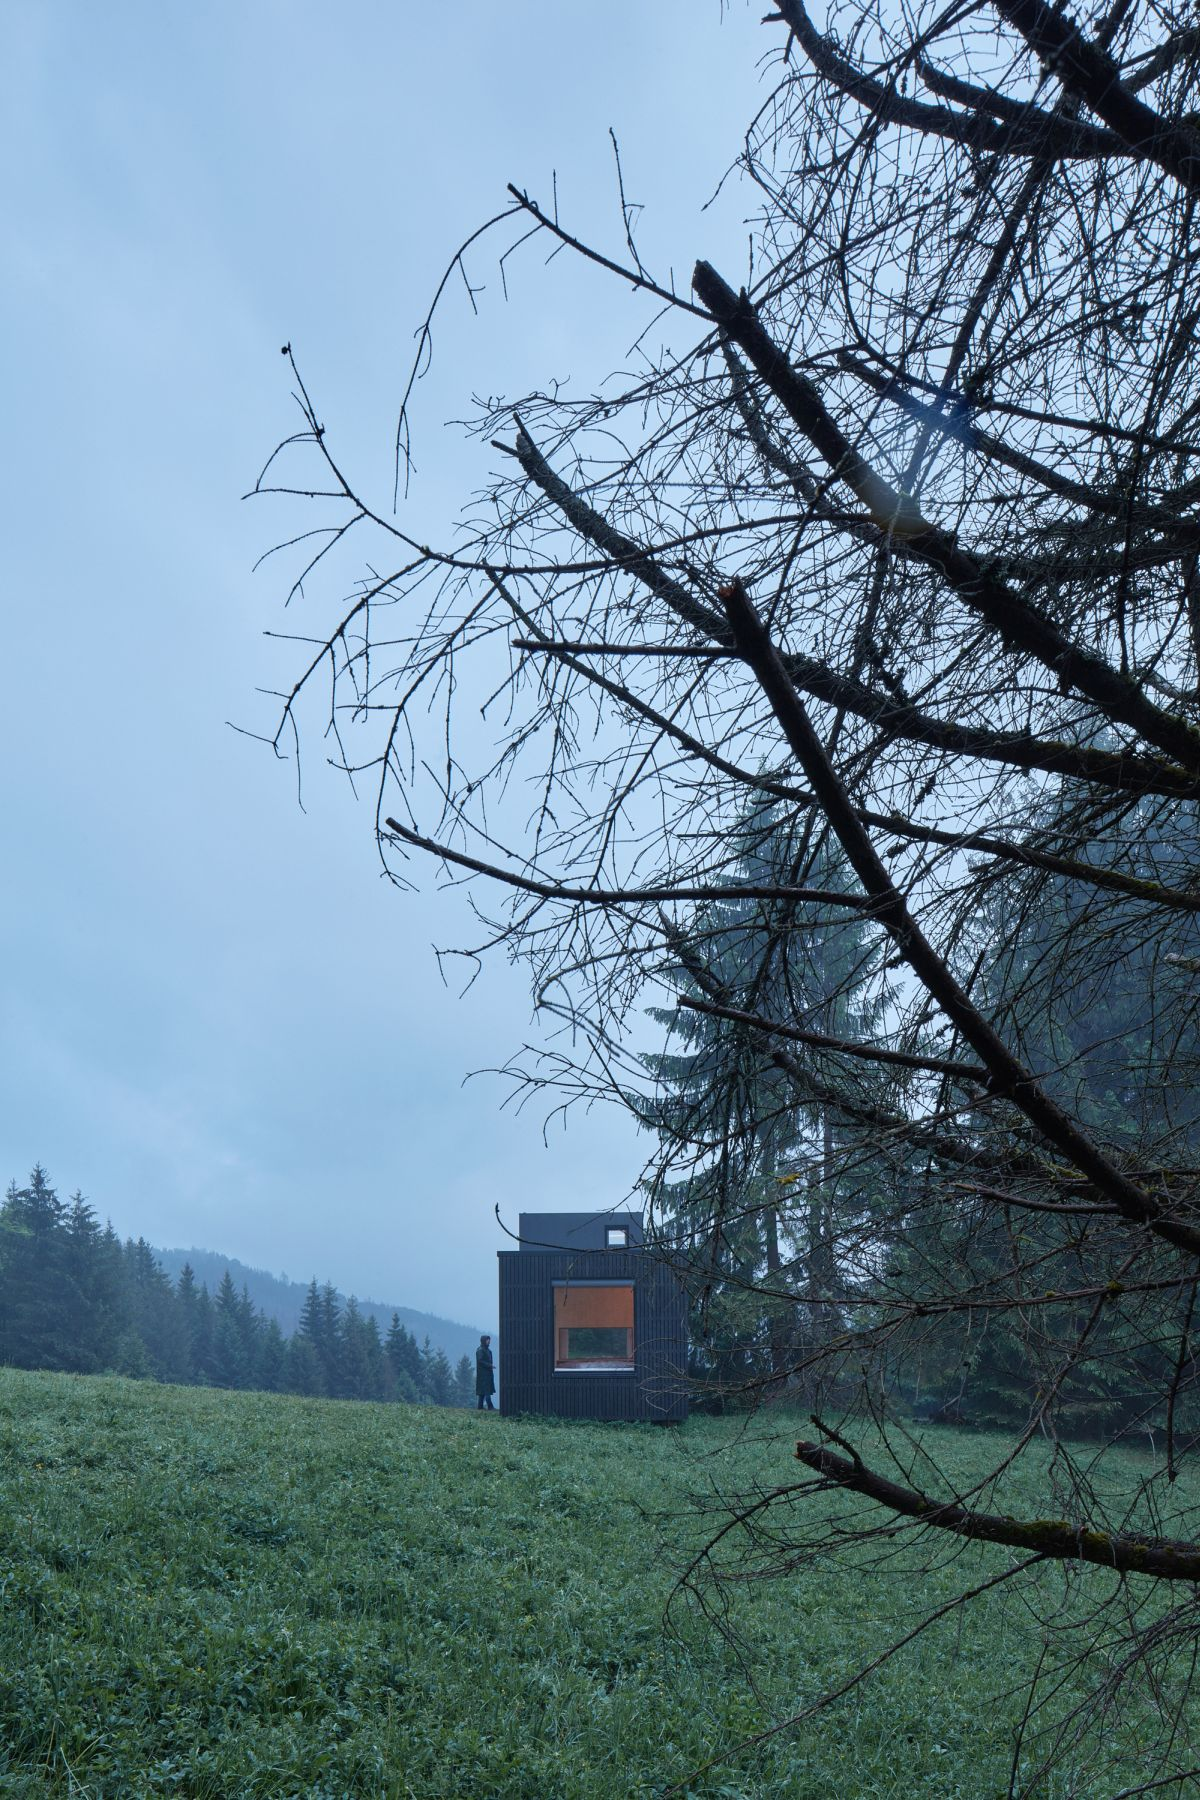 The minimalist and modest exterior design allows the cabin to better blend in with nature